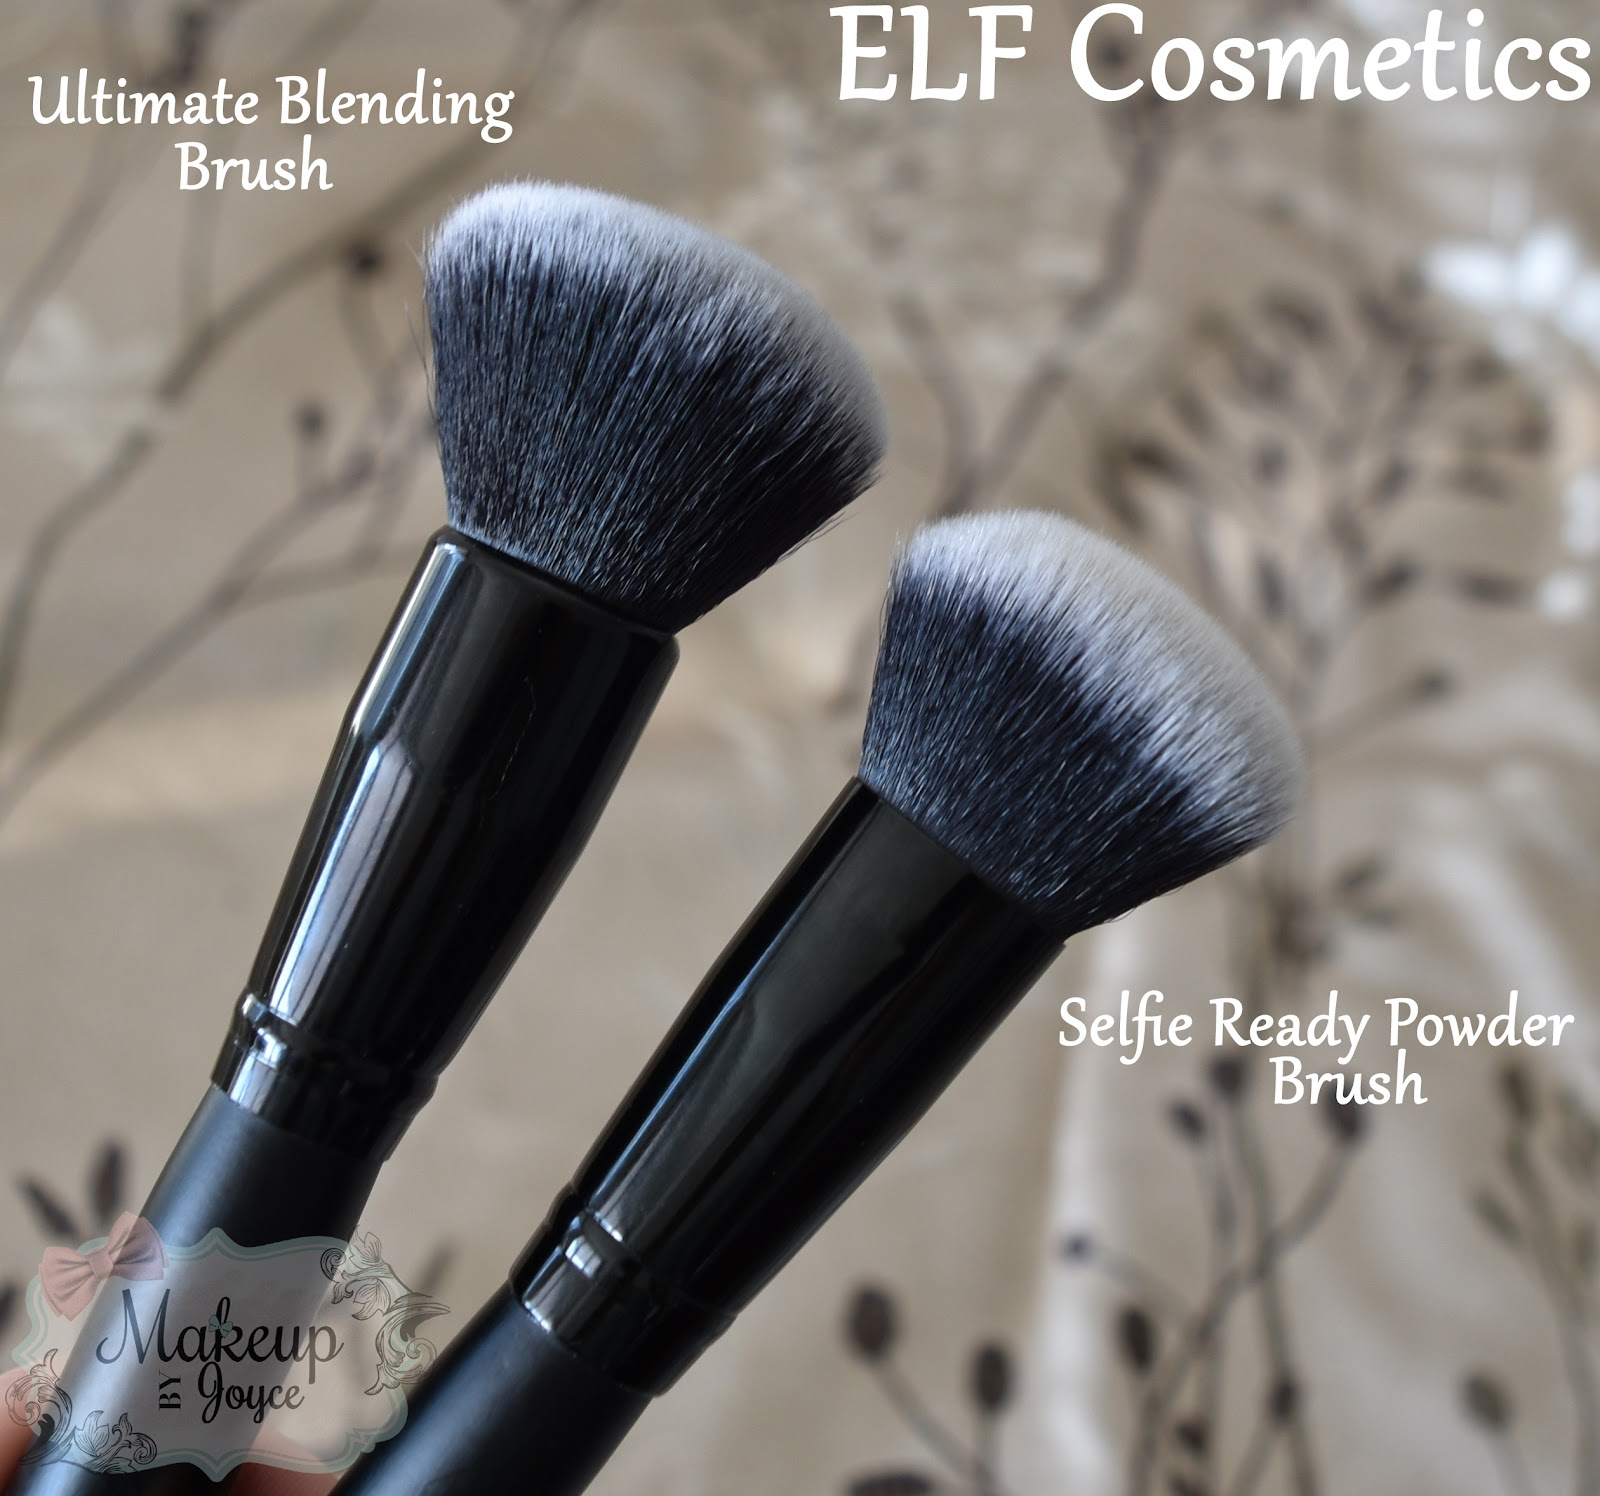 Detail Crease Brush by e.l.f. #22